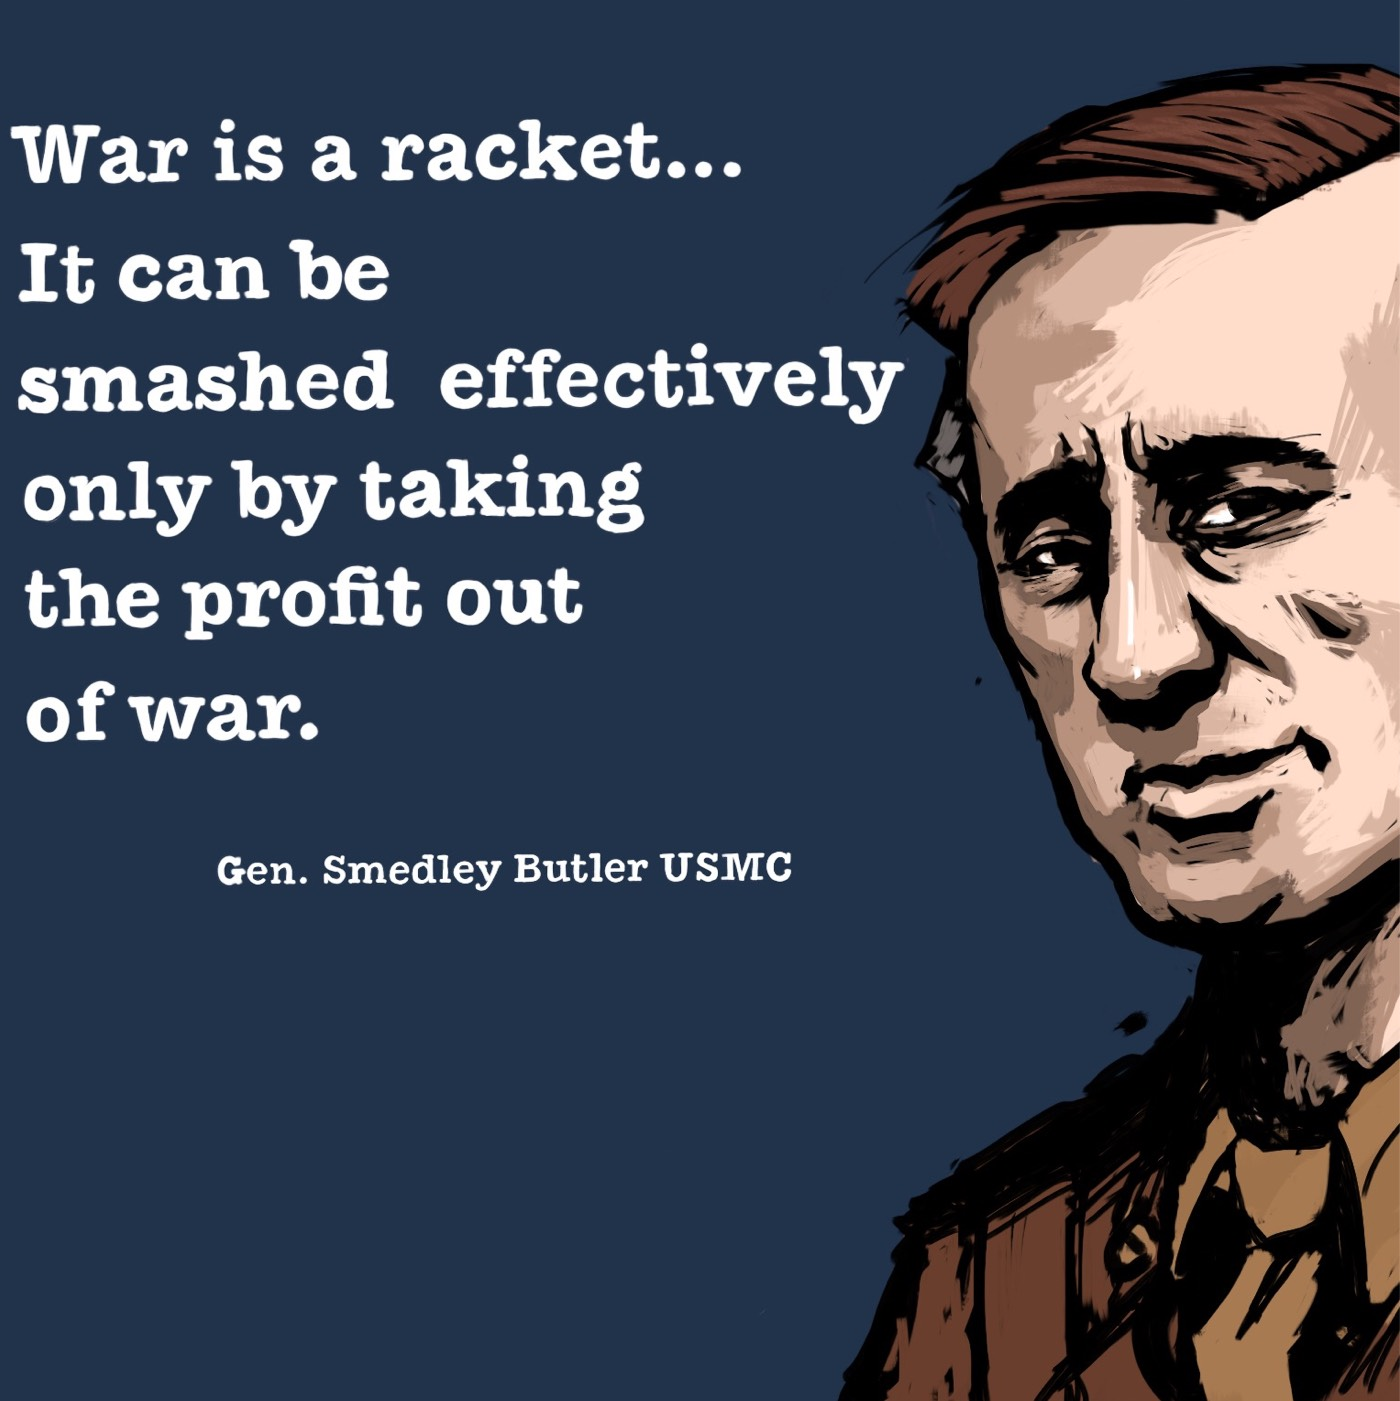 (2015/05/01) War is a racket (Foreign Policy)